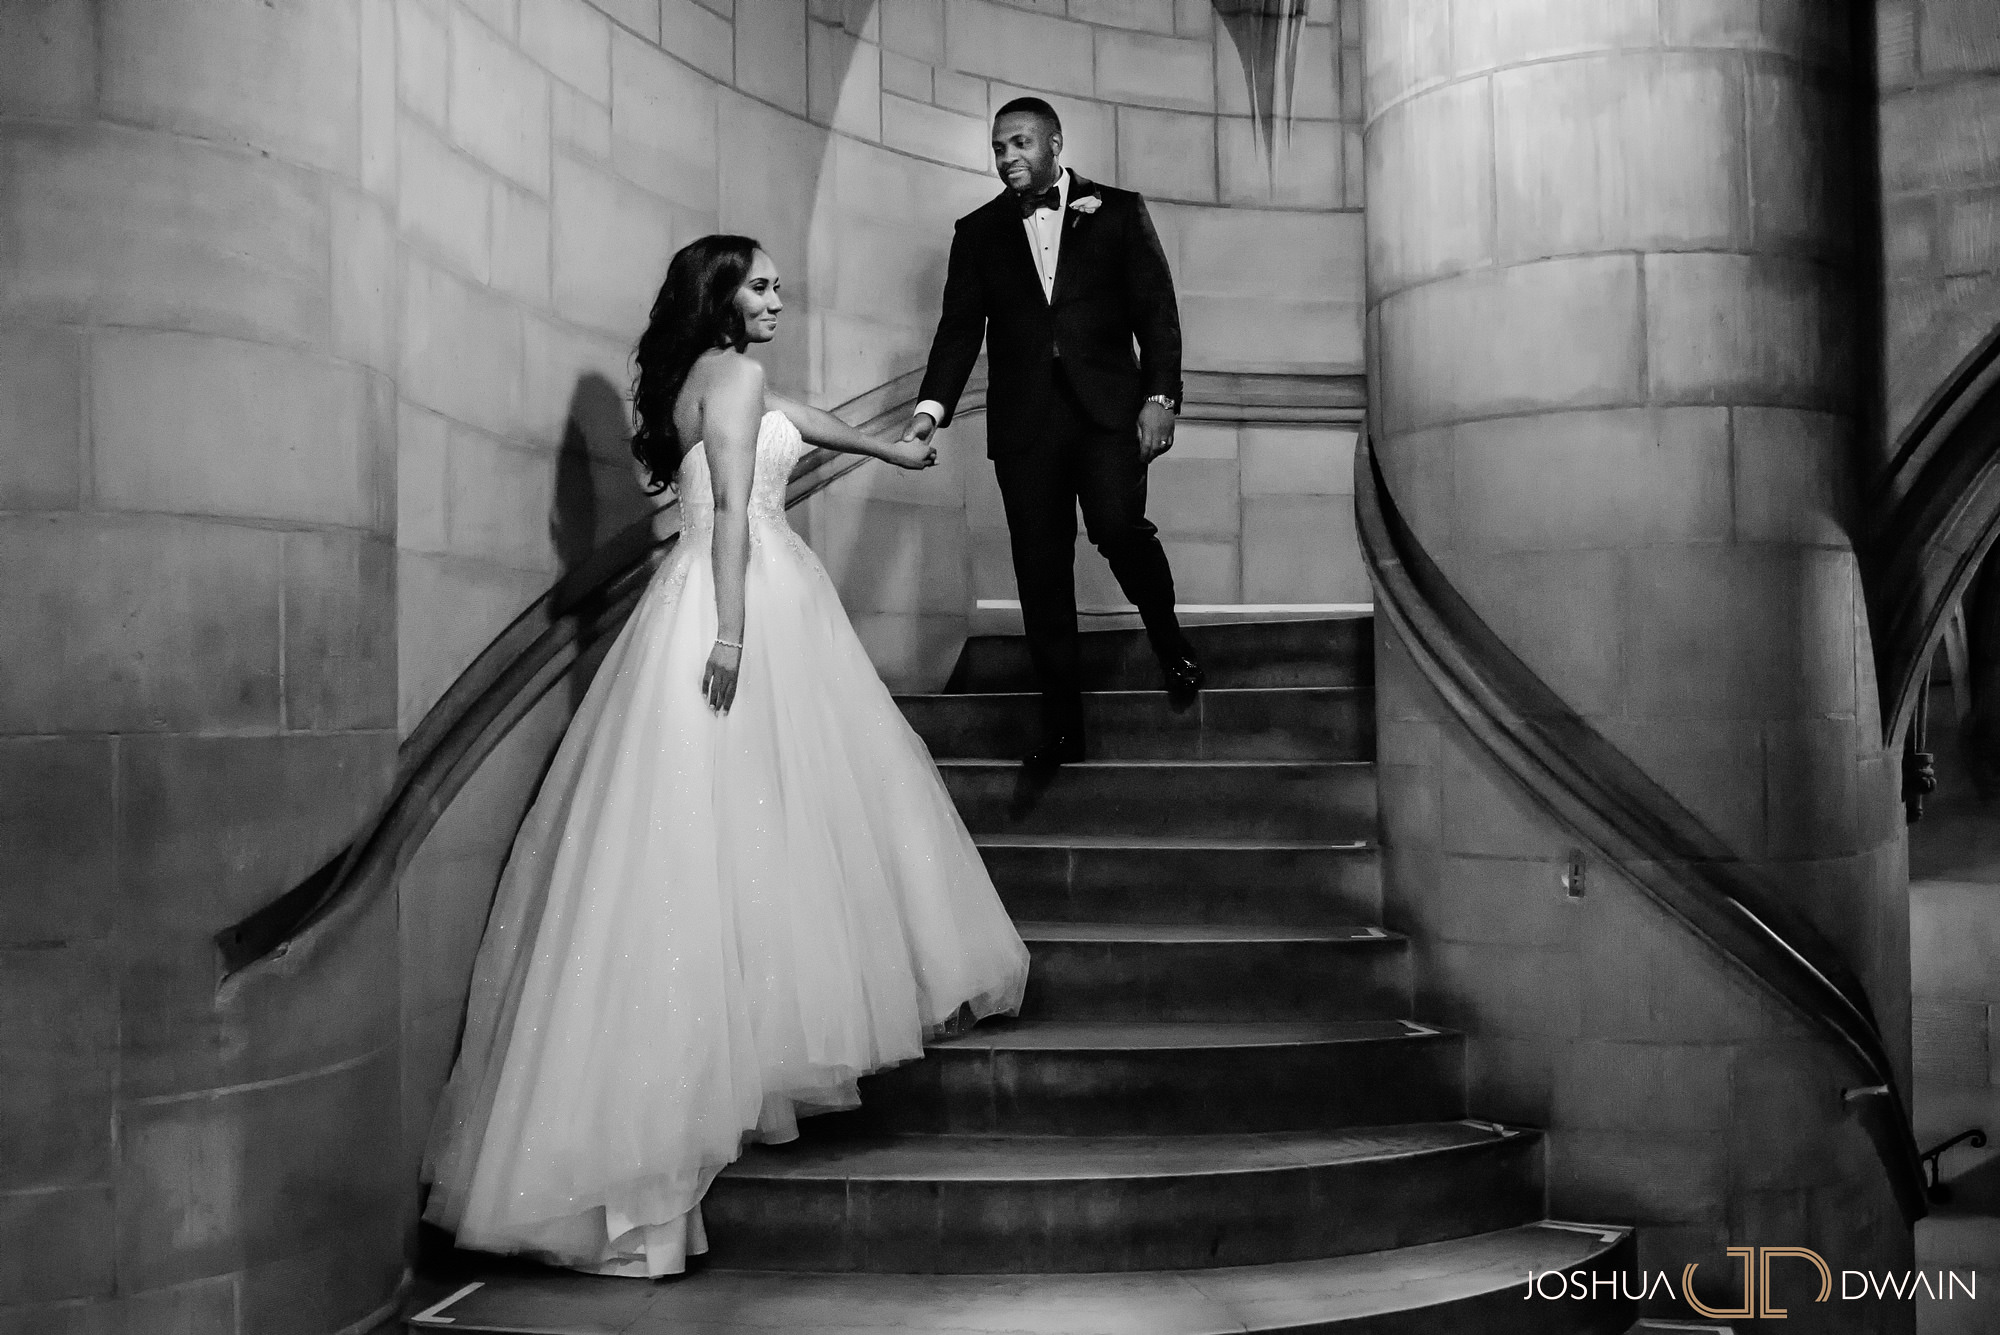 Ebony & Vernon's wedding at the Riverside Church